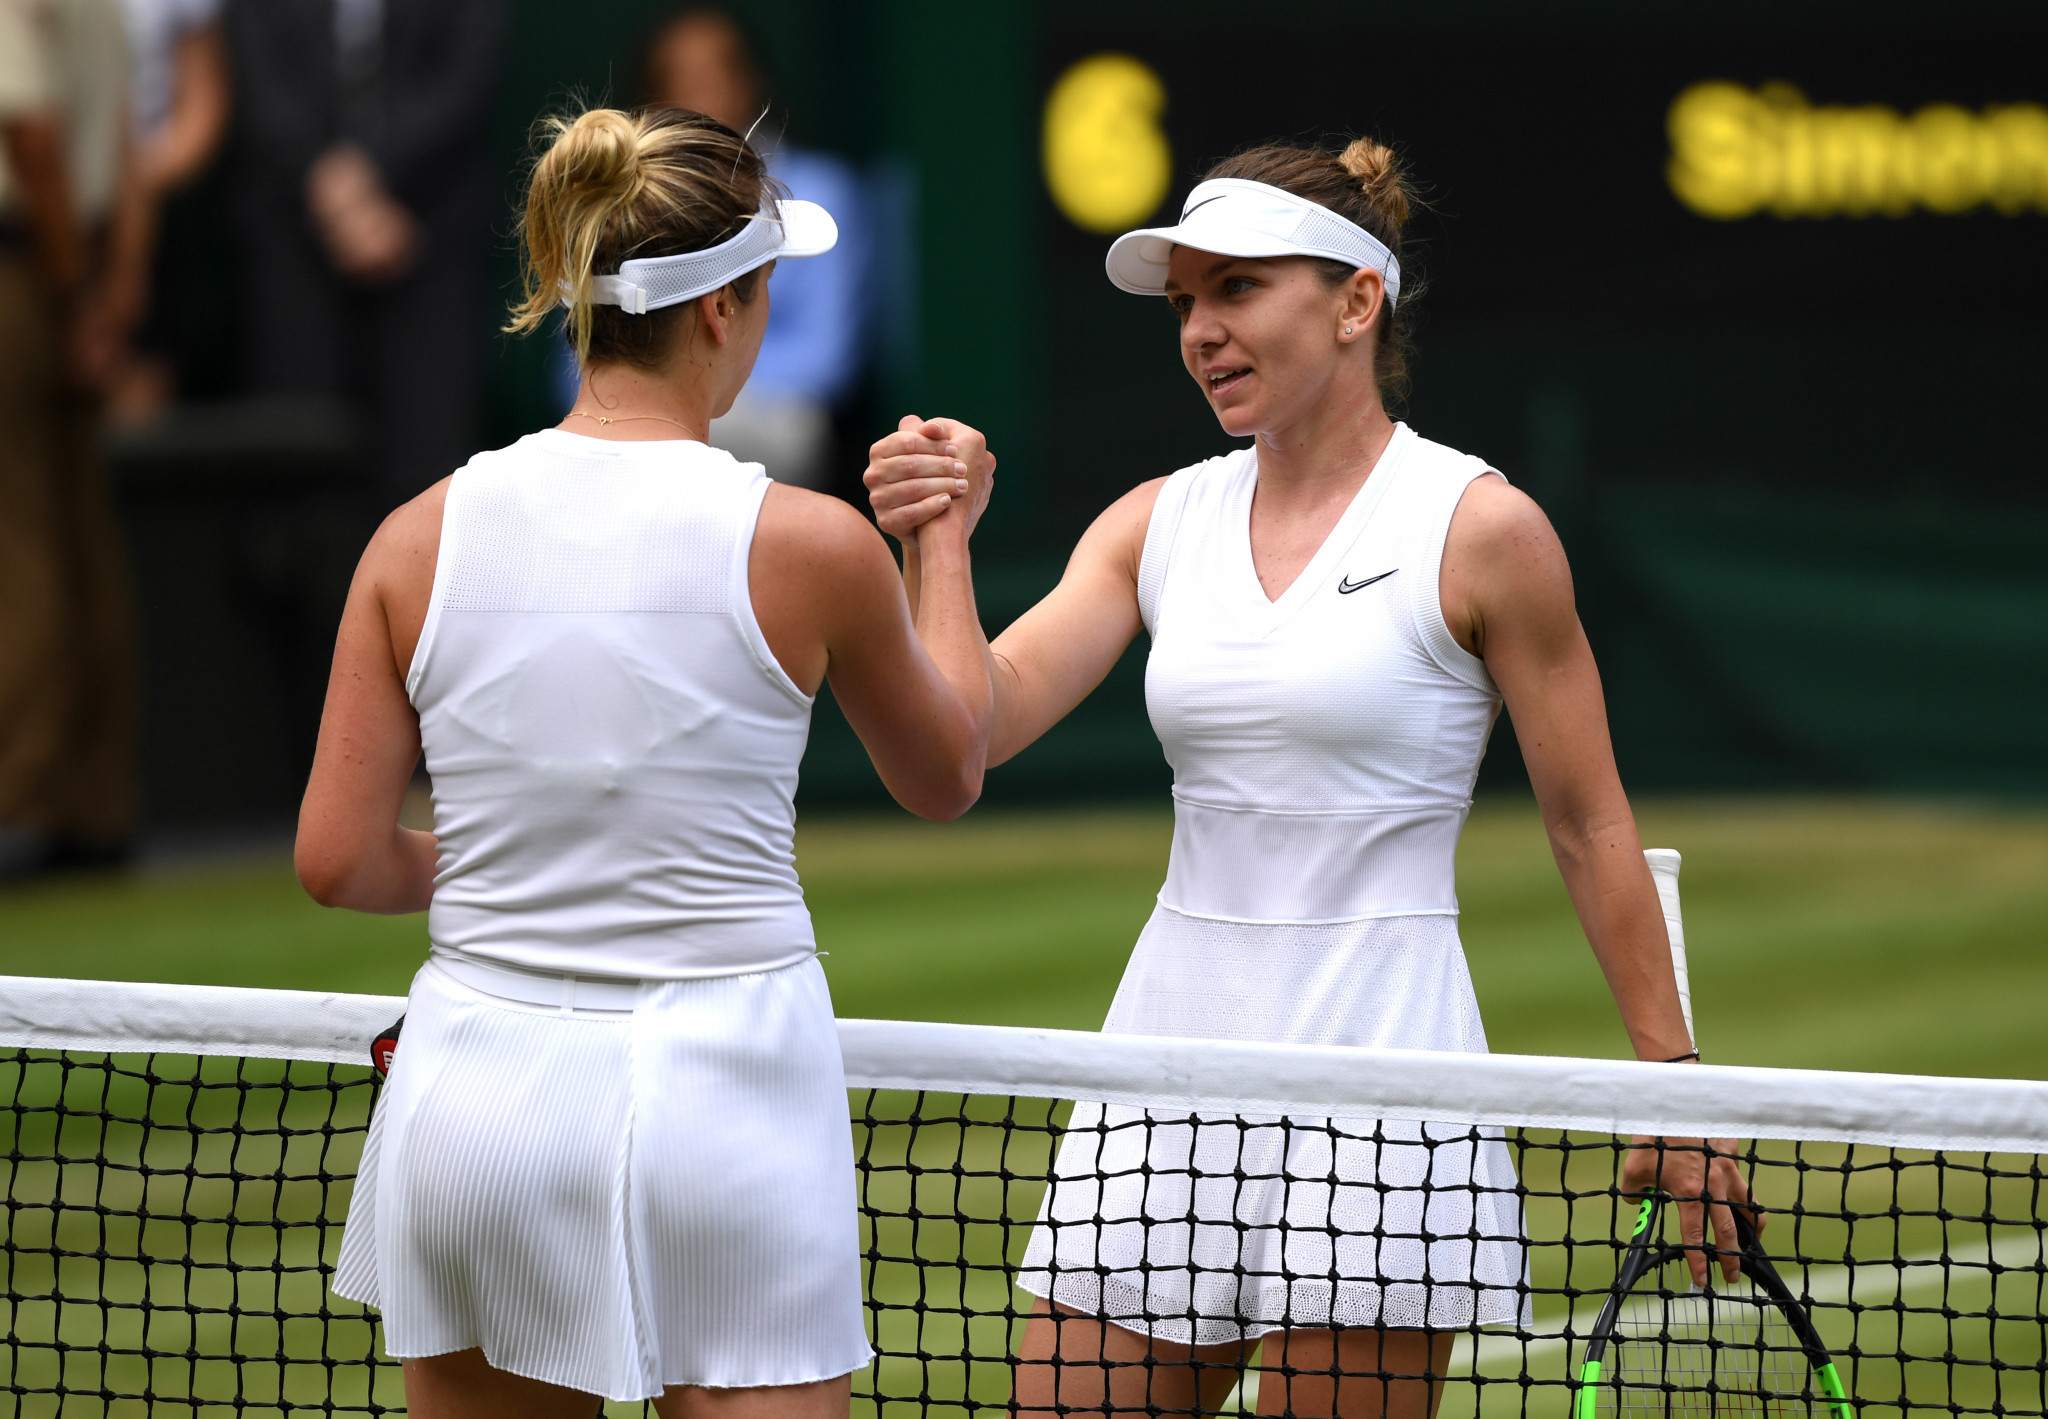 Halep and Williams ease through to women's singles final at Wimbledon